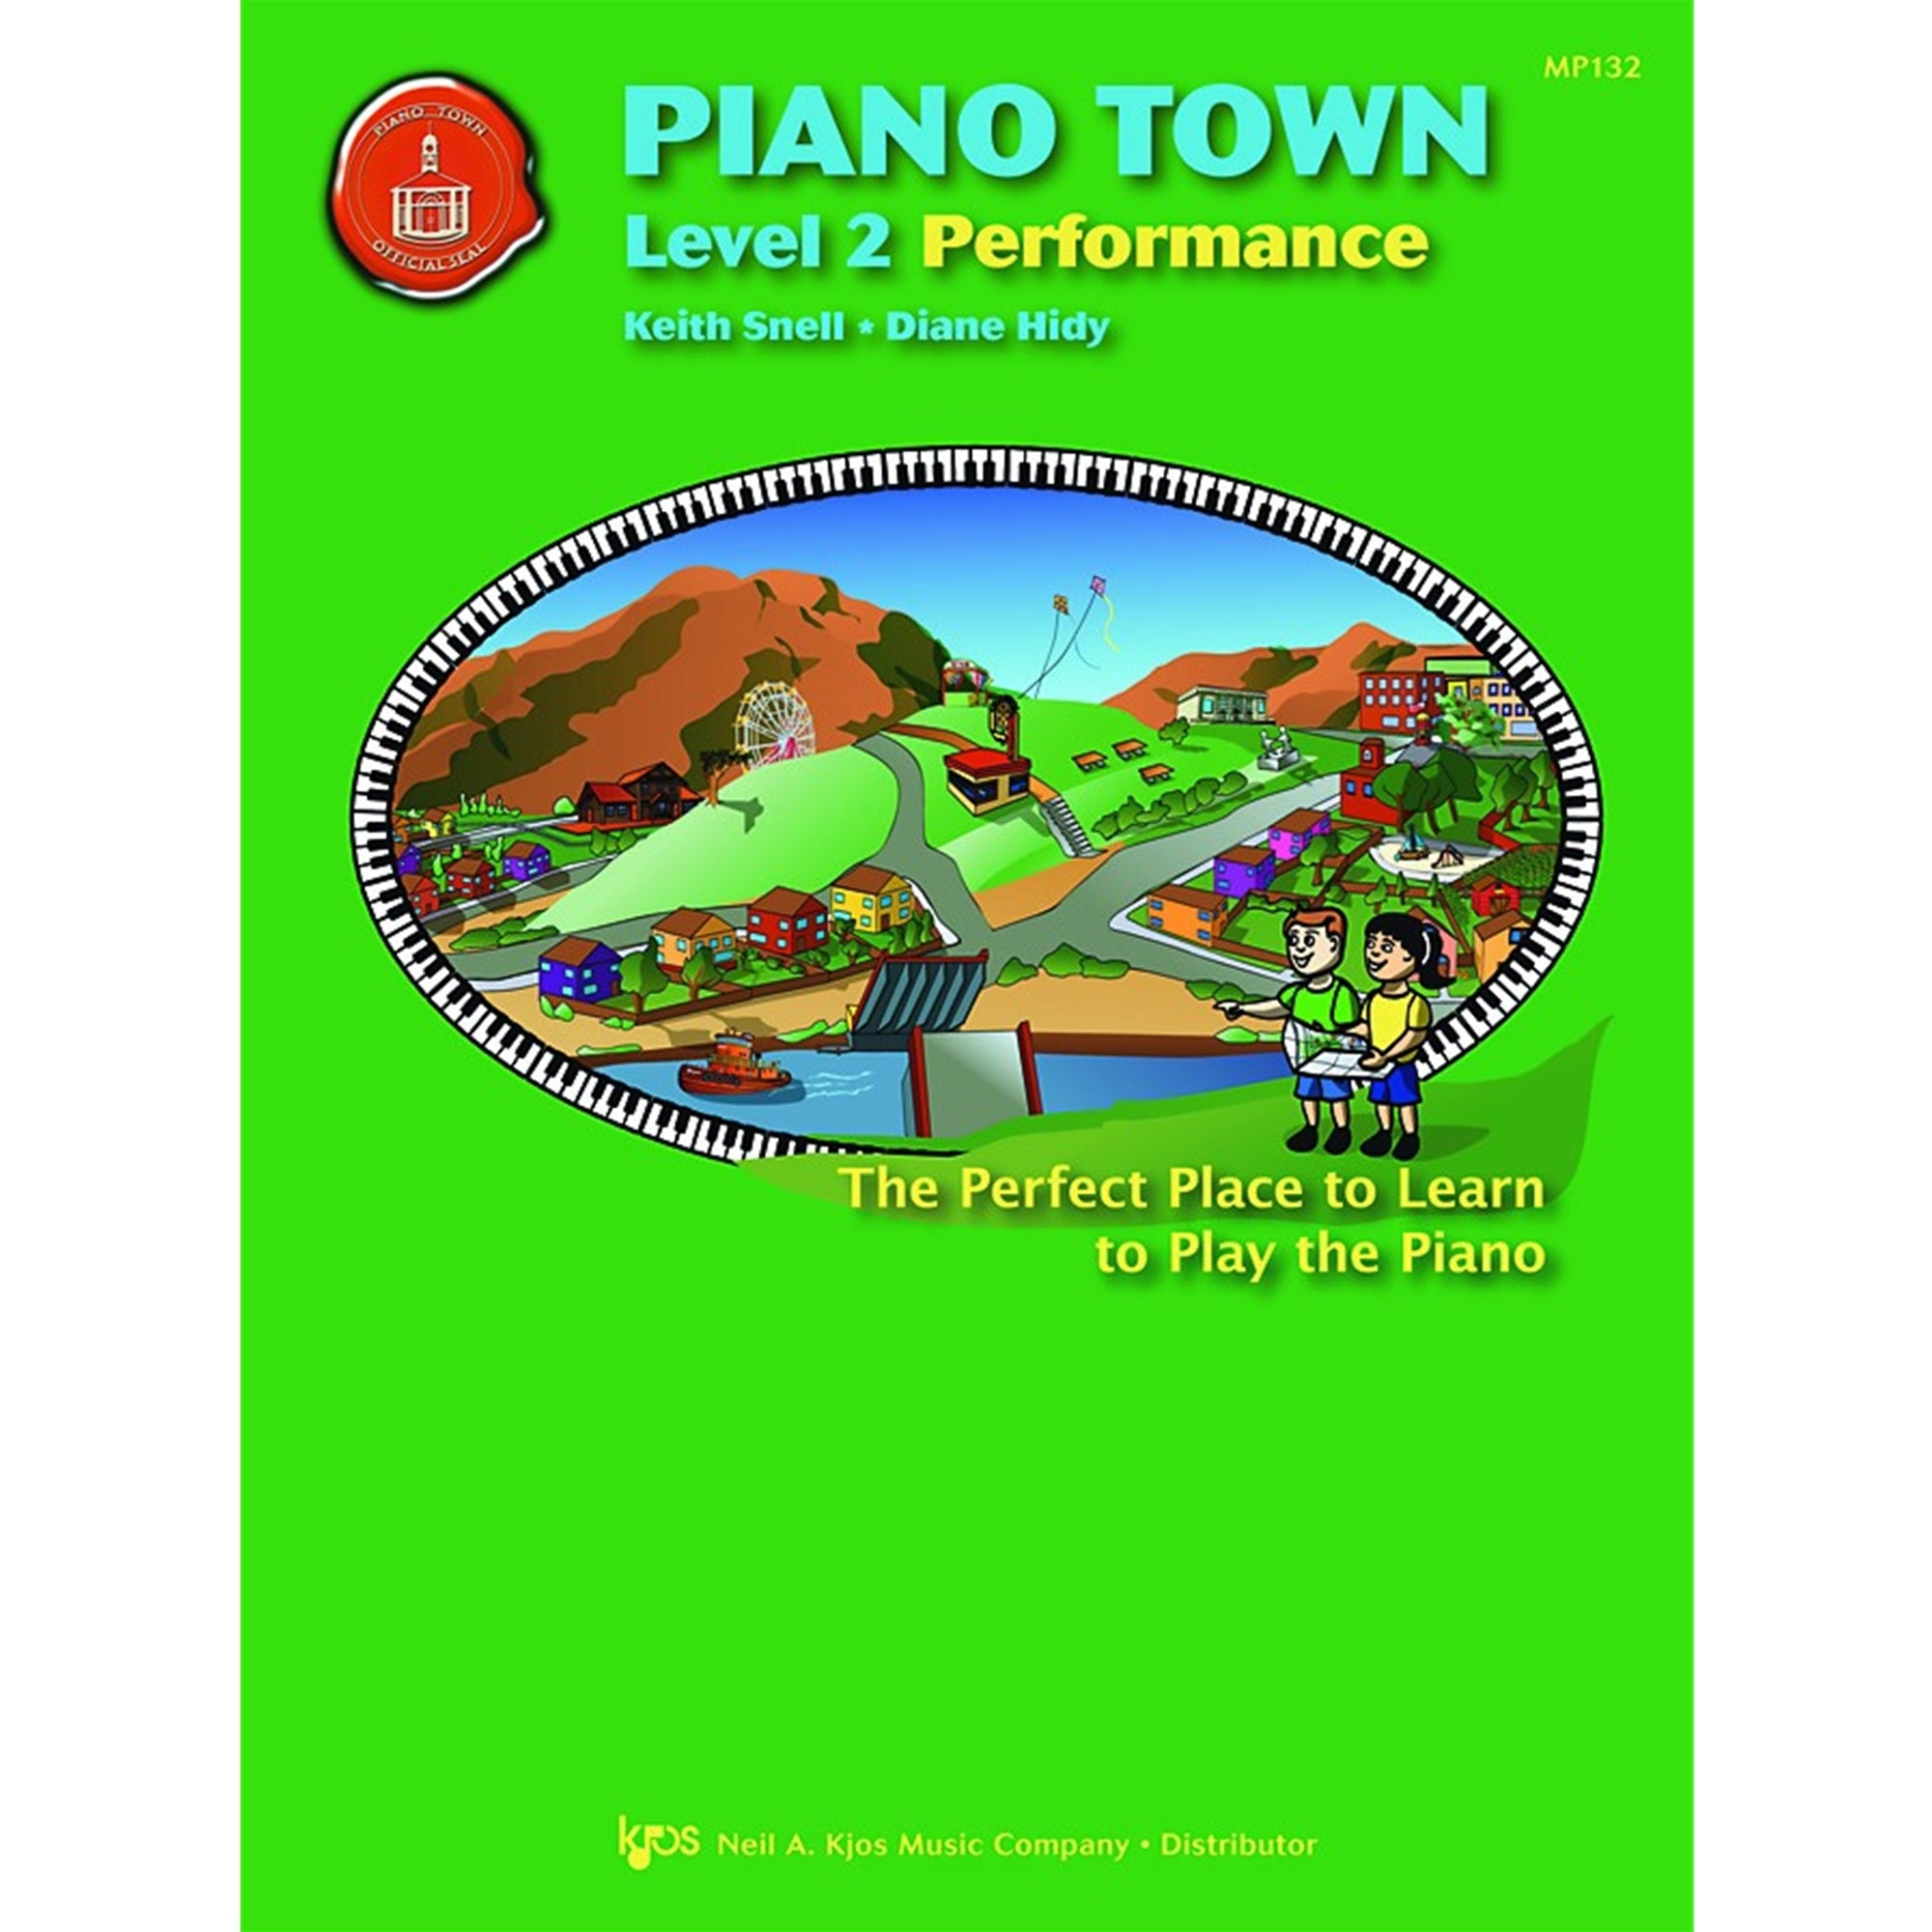 KJOS MP132 Piano Town Performance Level 2